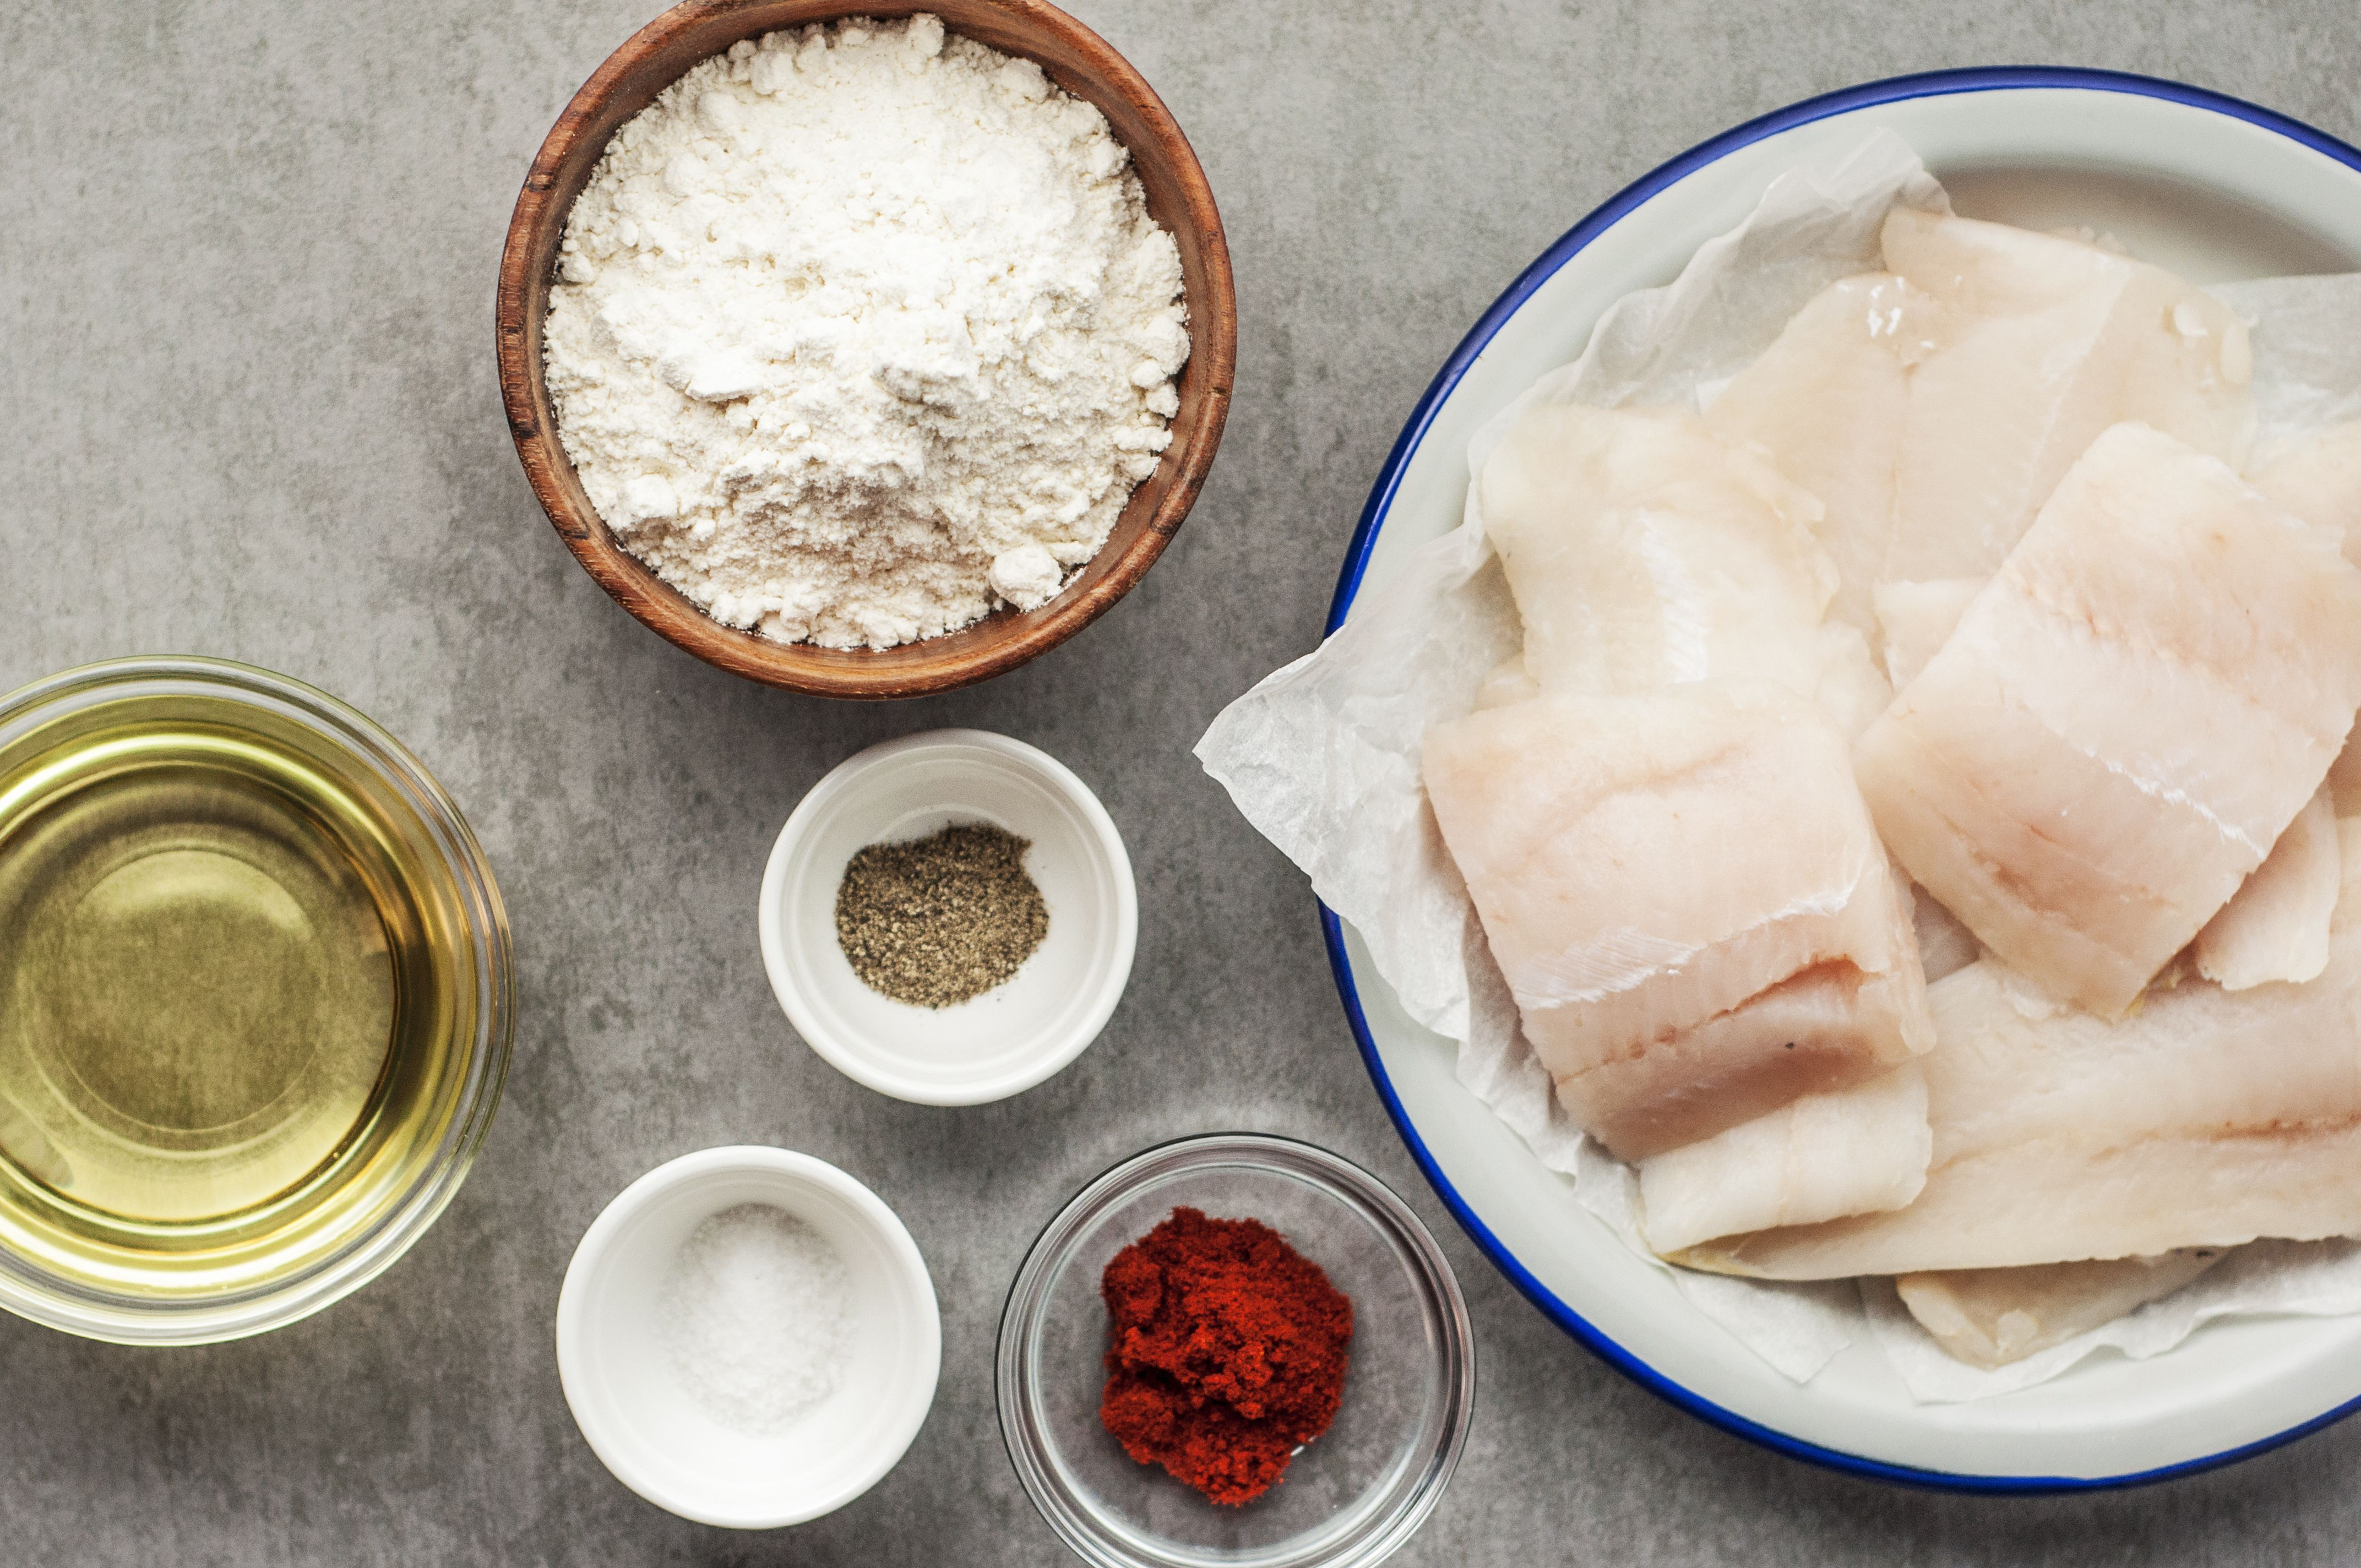 Ingredients set out for making the fried fish fillets